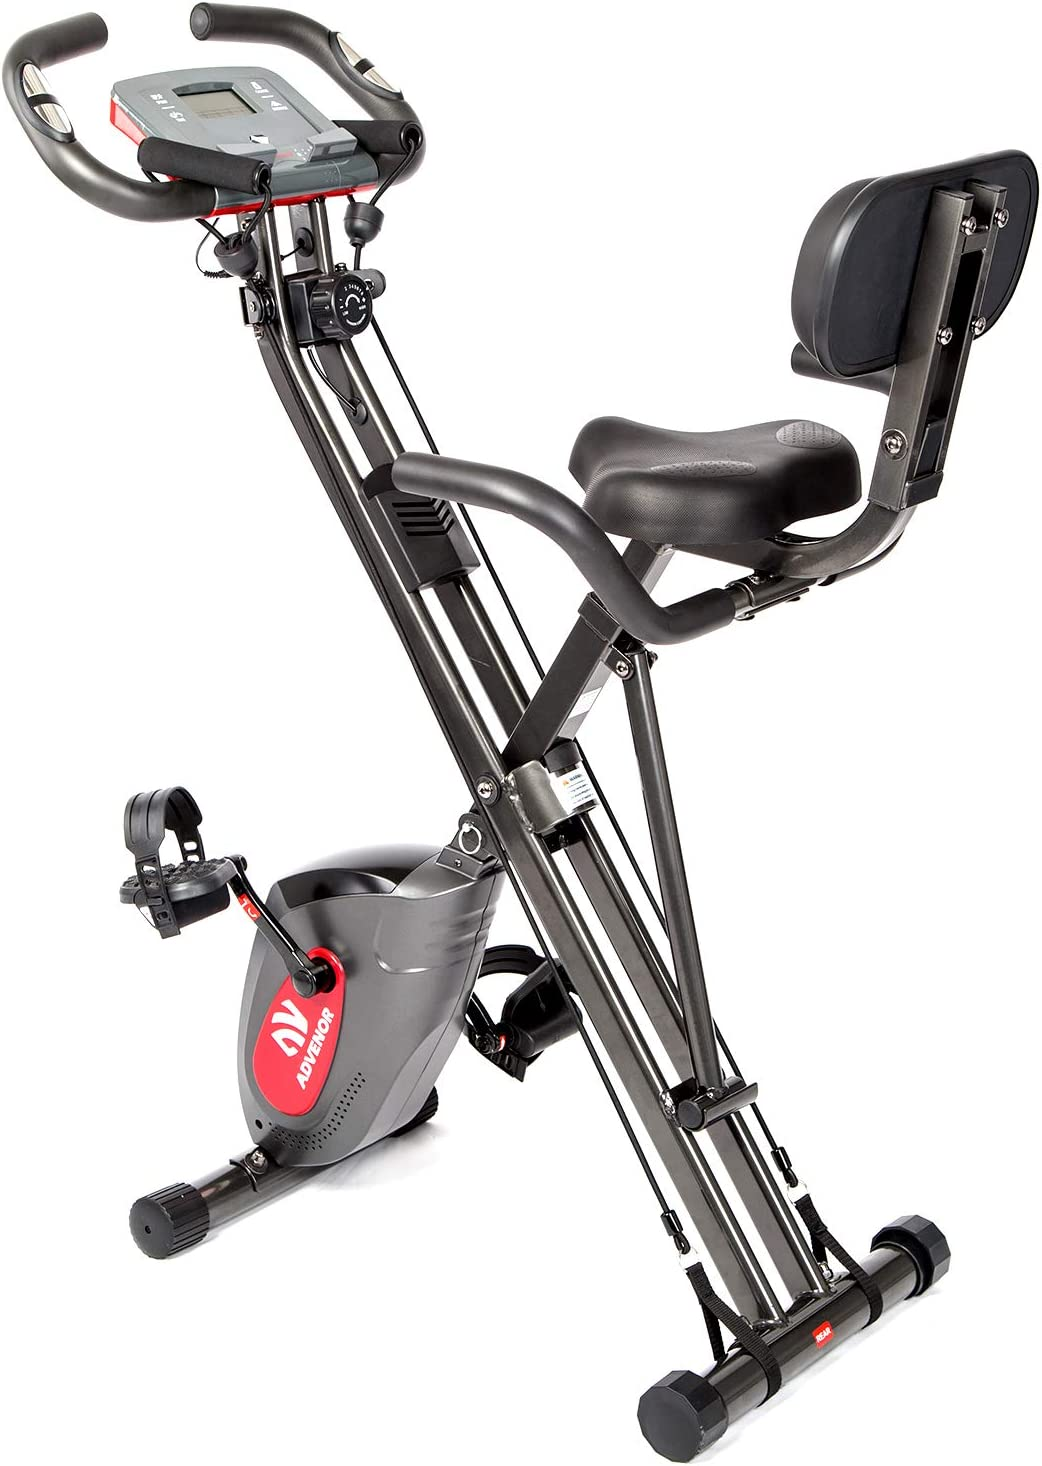 ADVENOR Exercise Bike Magnetic Bike Fitness Bike Cycle Folding Stationary Bike Arm Resistance Band With Arm Workout Backrest Extra-Large Seat Cushion Indoor Home Use